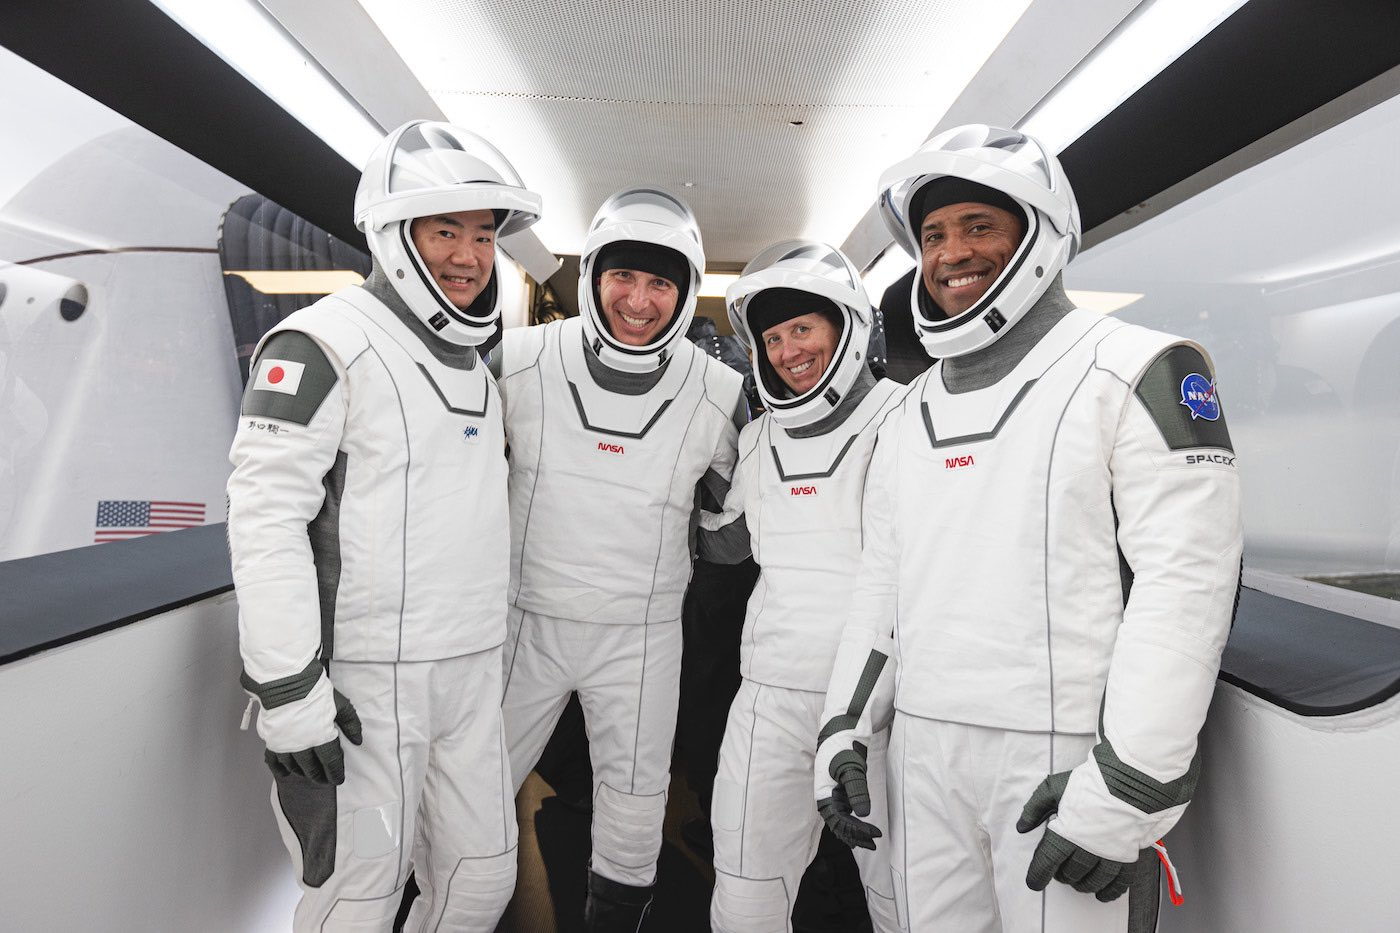 Astronauts train for launch day while mission managers watch the weather – Spaceflight Now